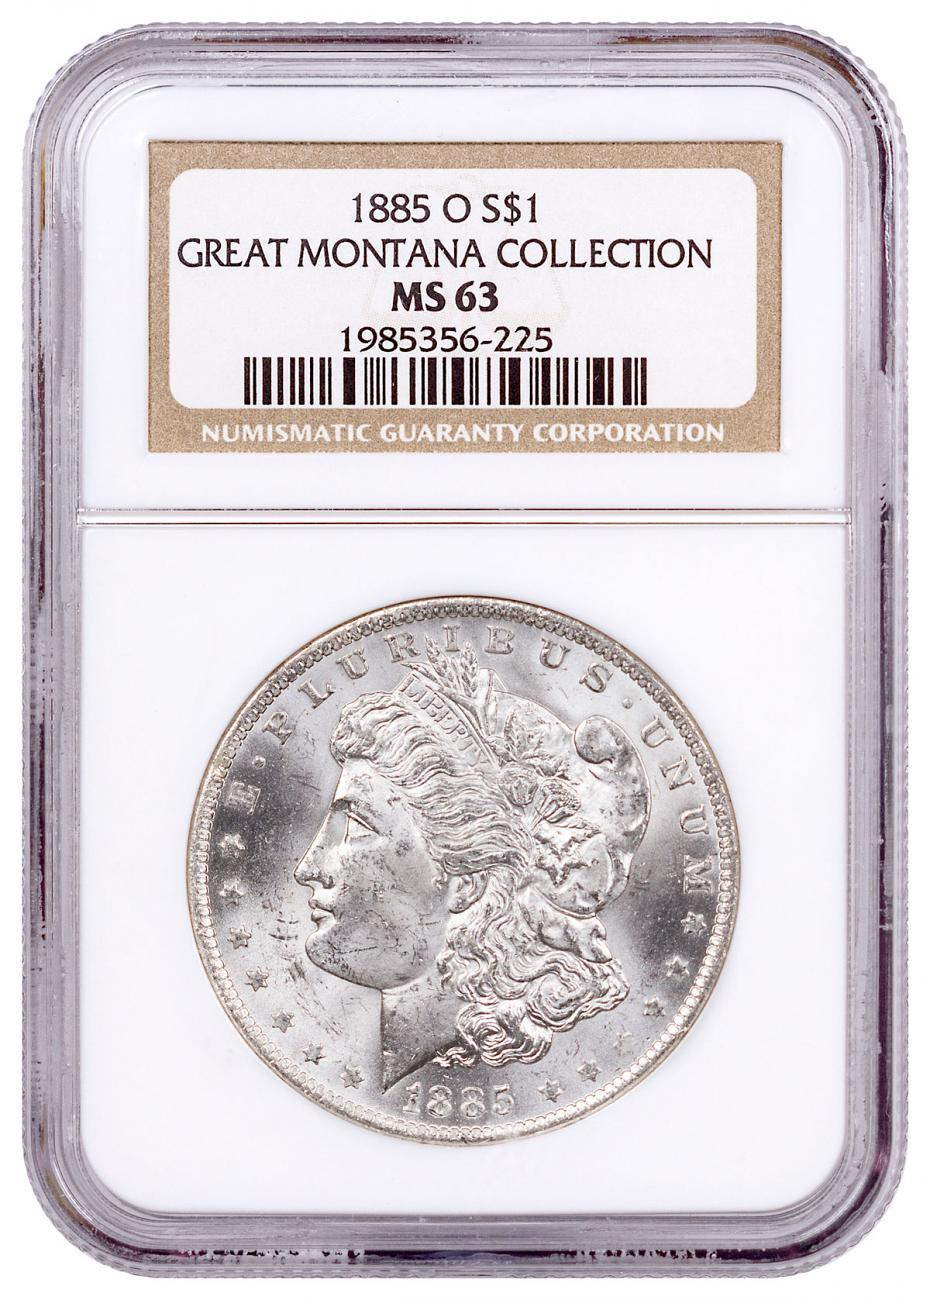 1885-O Morgan Silver Dollar From the Great Montana Collection NGC MS63